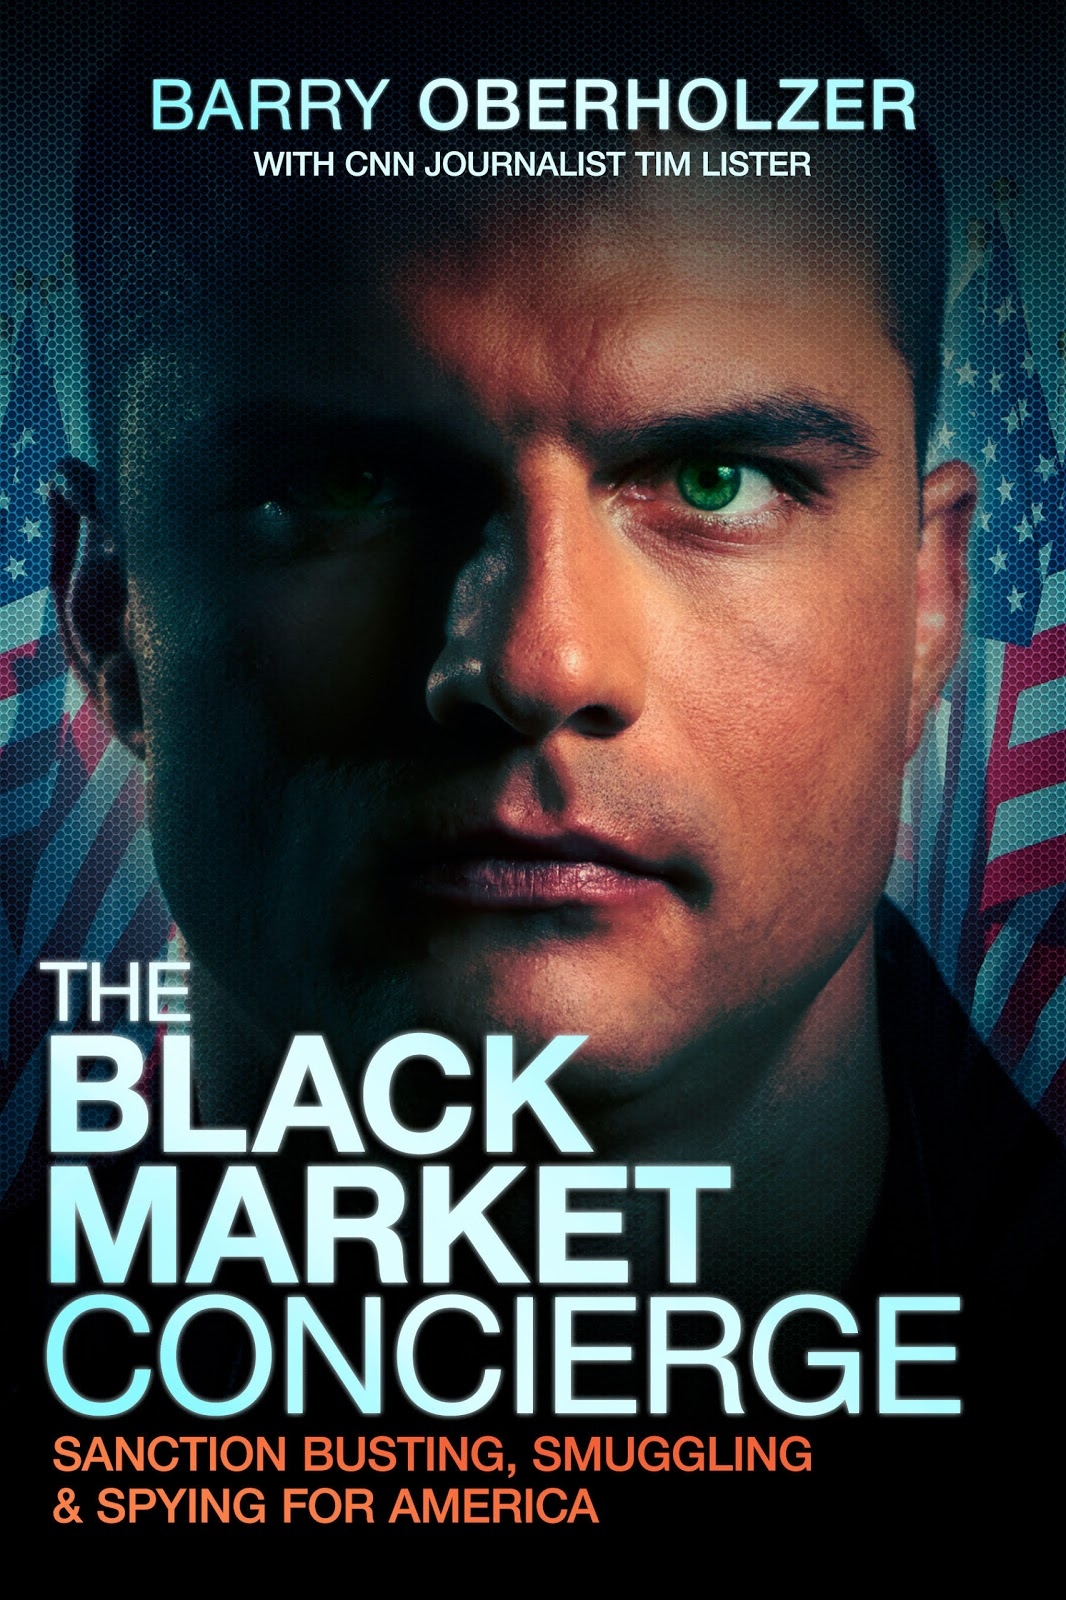 The Black Market Concierge by Barry Oberholzer (Review